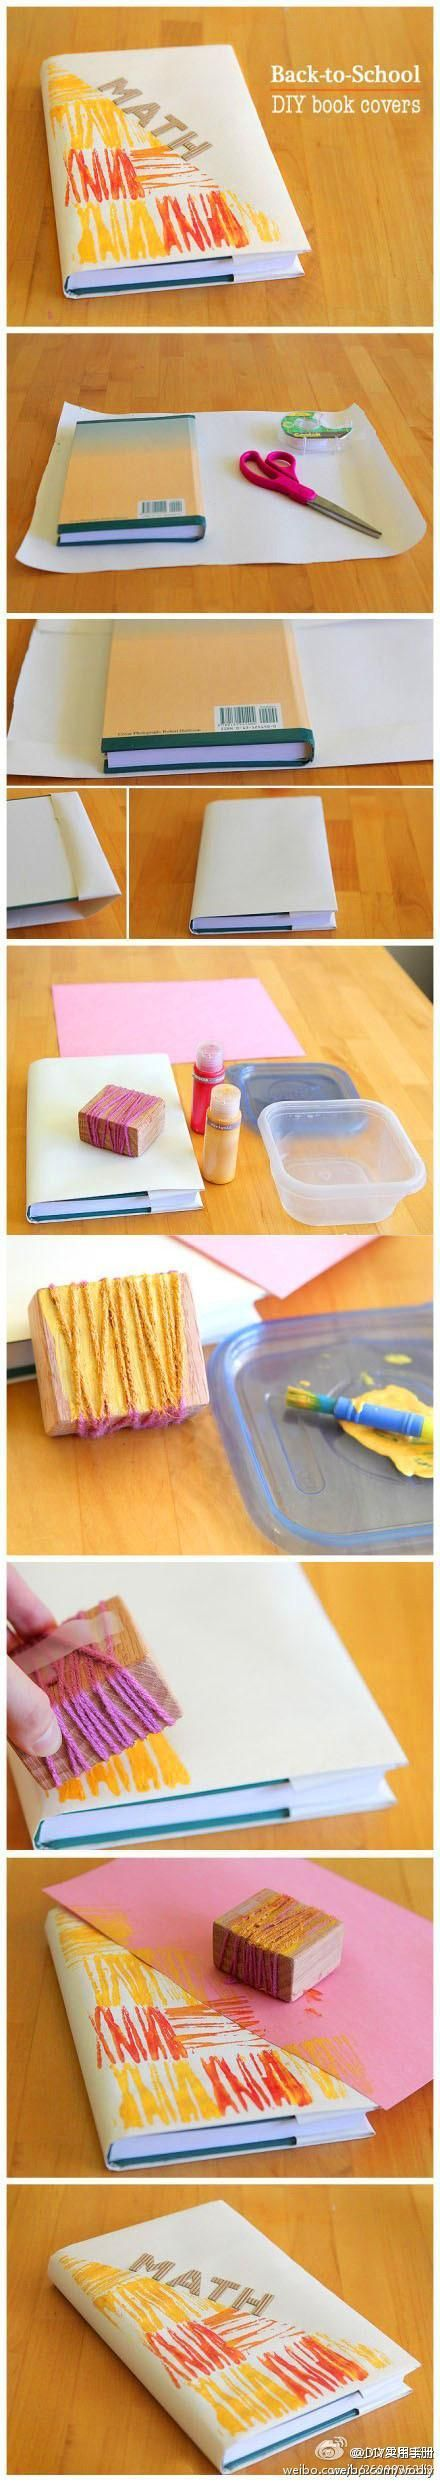 Book Cover Diy : Best images about book covering on pinterest gel